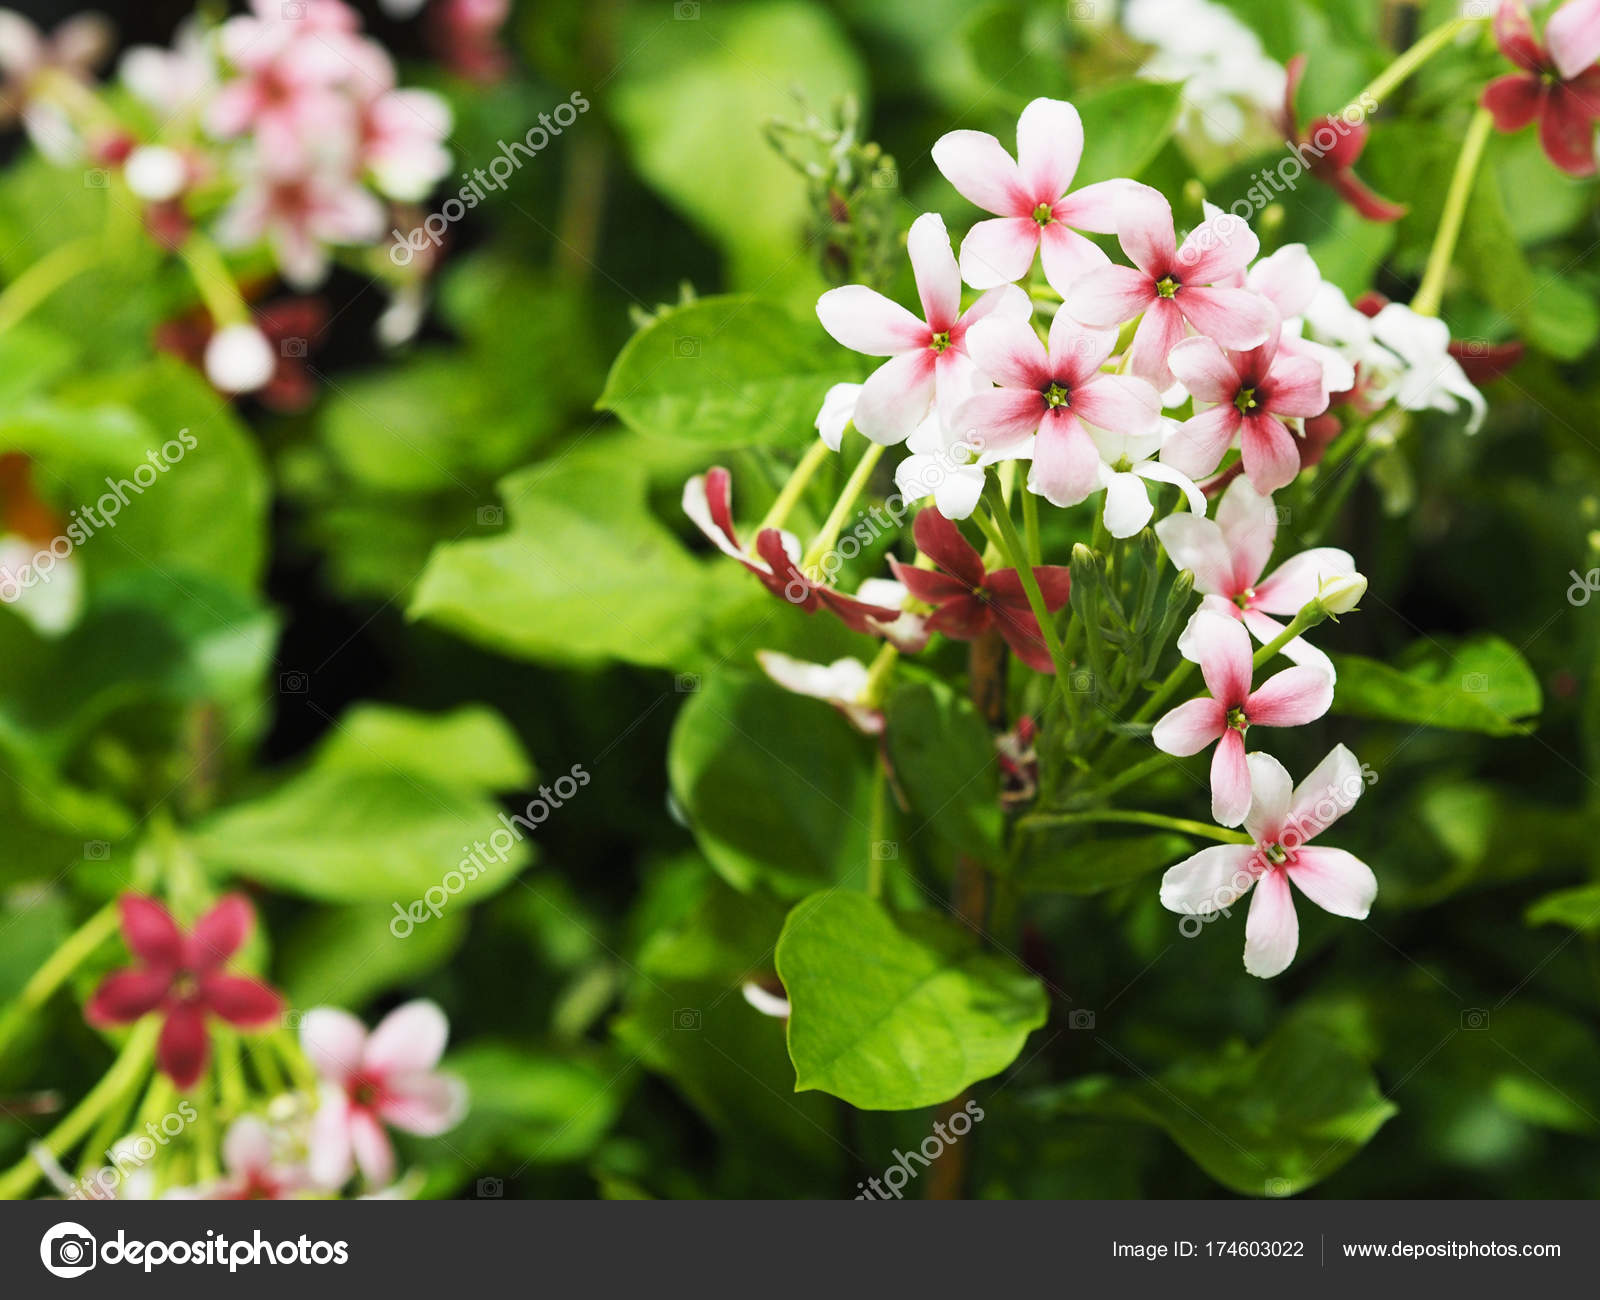 Small White And Pink Creeper Flowers With Green Leaves Stock Photo